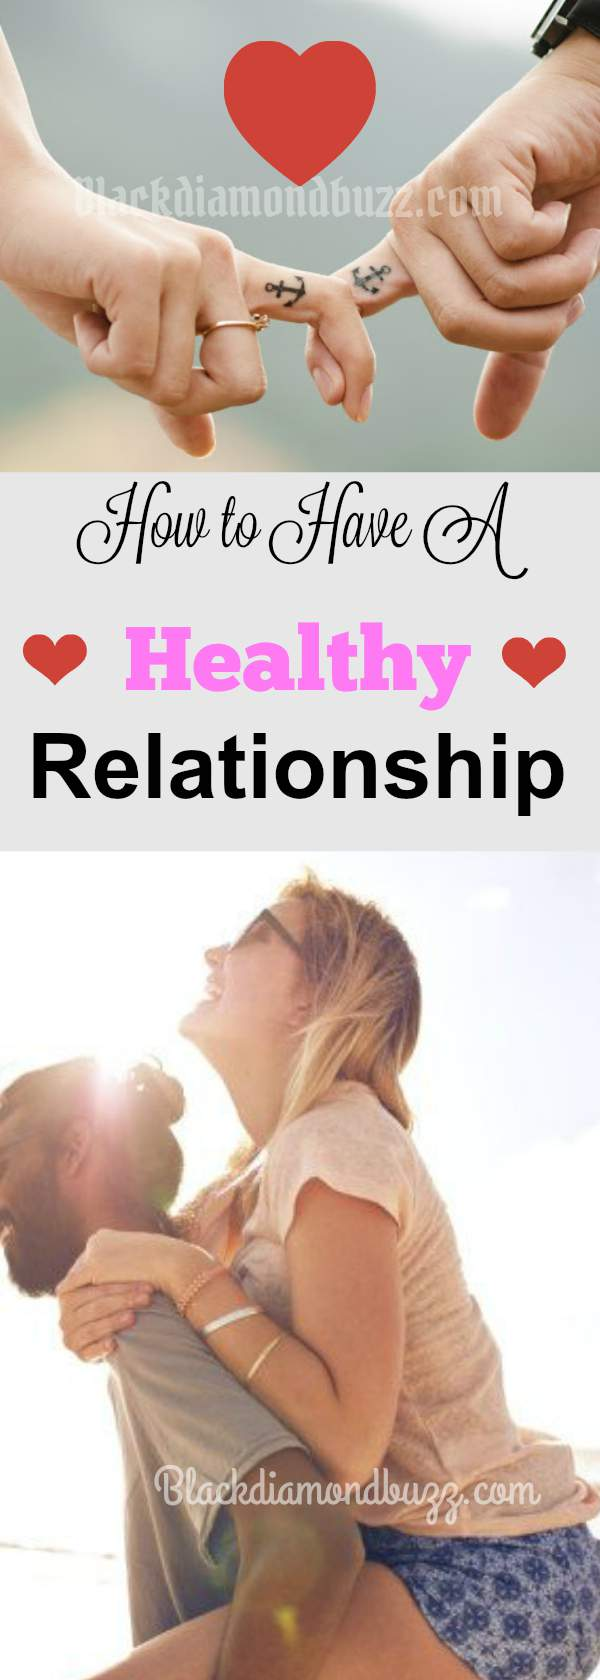 how to have a healthy relationship_1